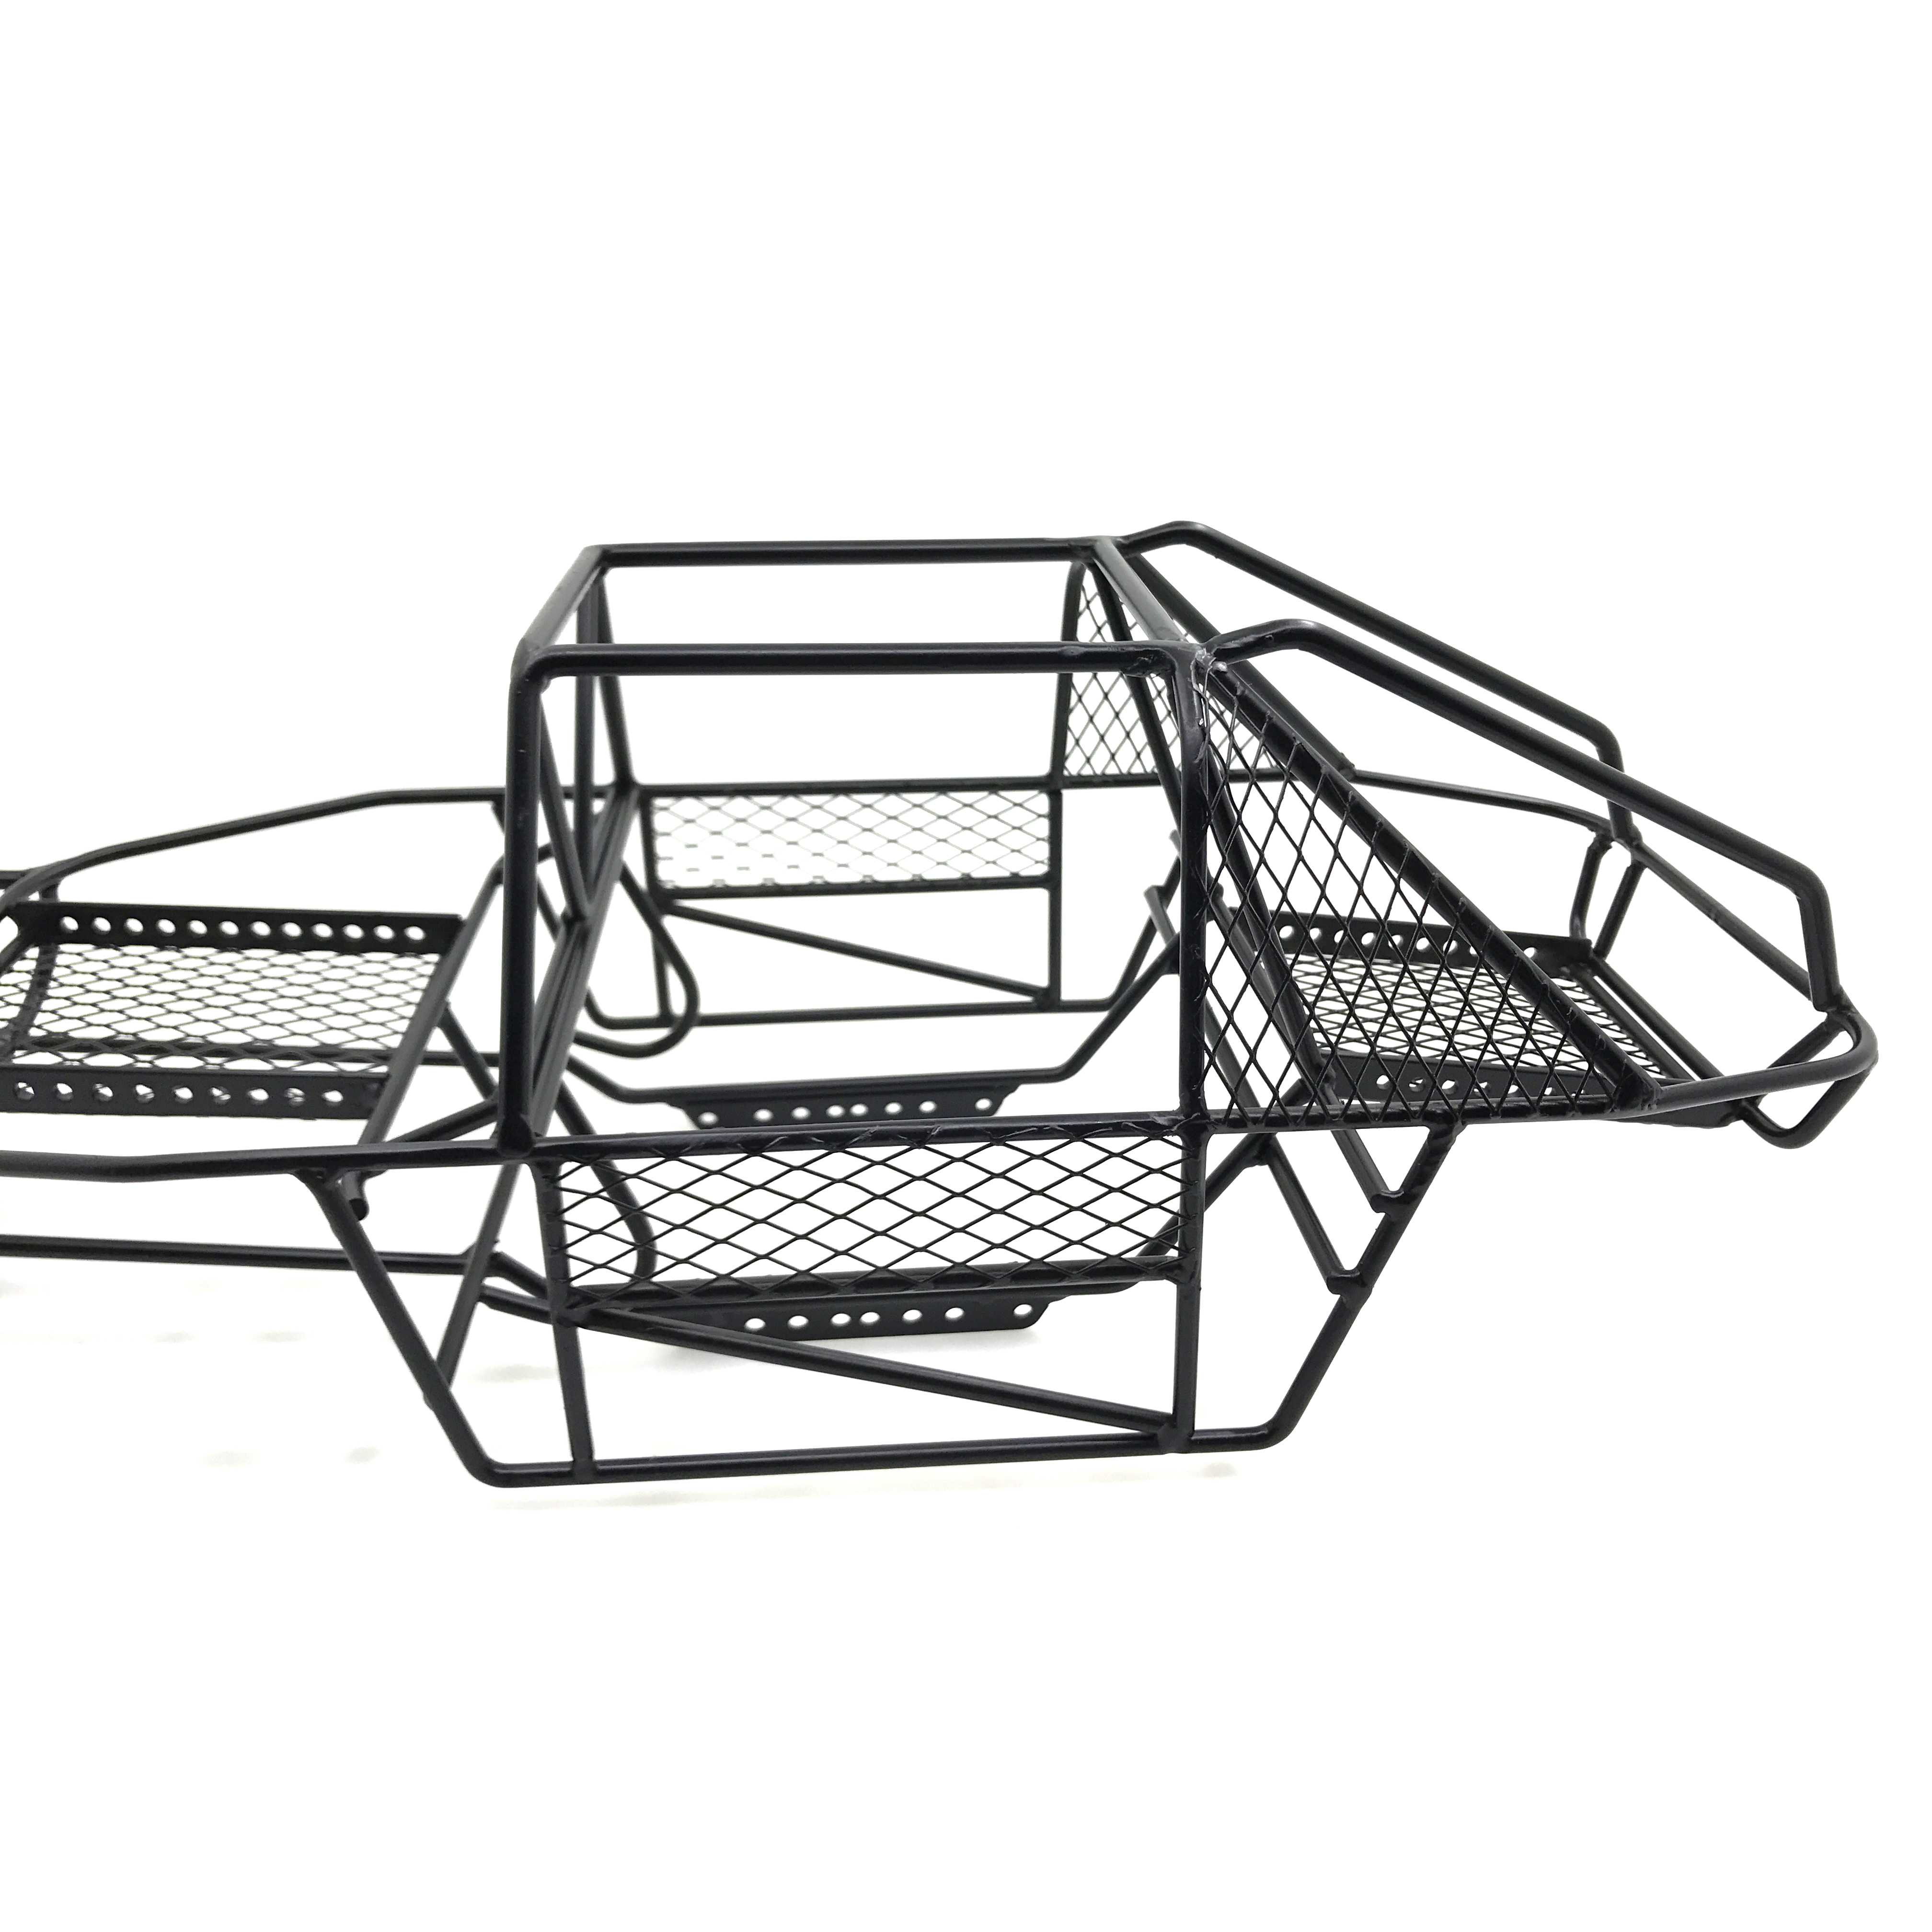 Steel Chassis Frame Cage Body Shell For Rc 1 10 Axial